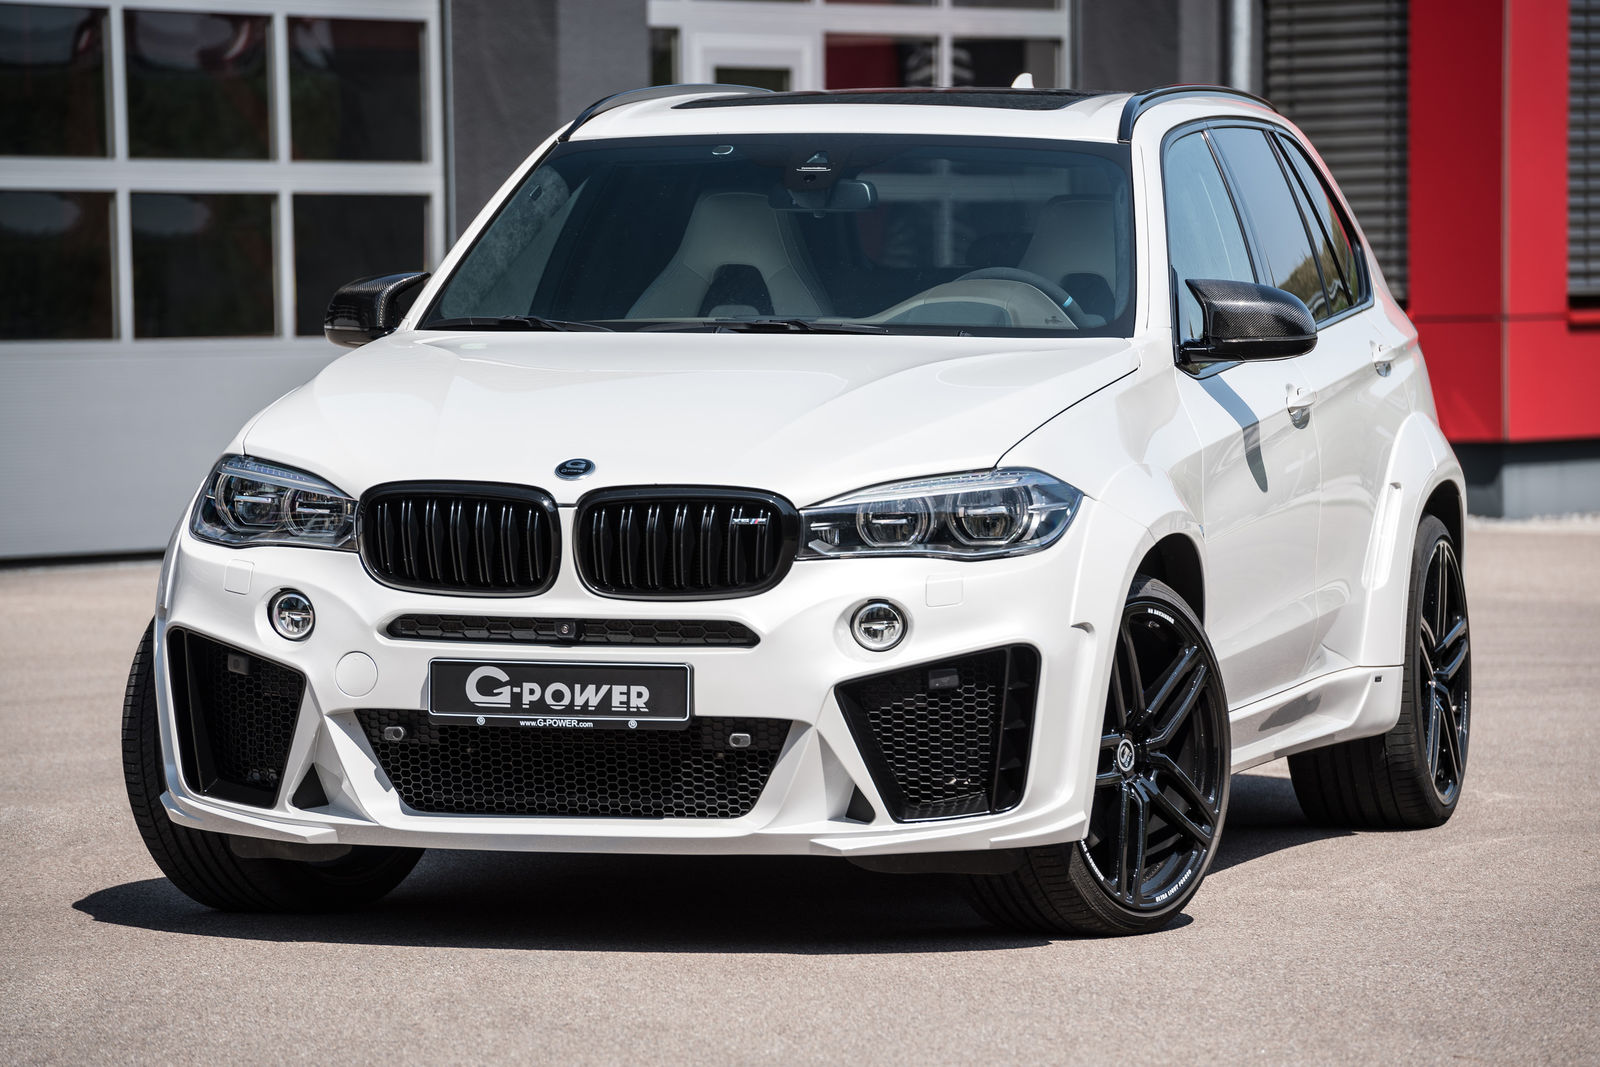 g power x5 m typhoon f85 01